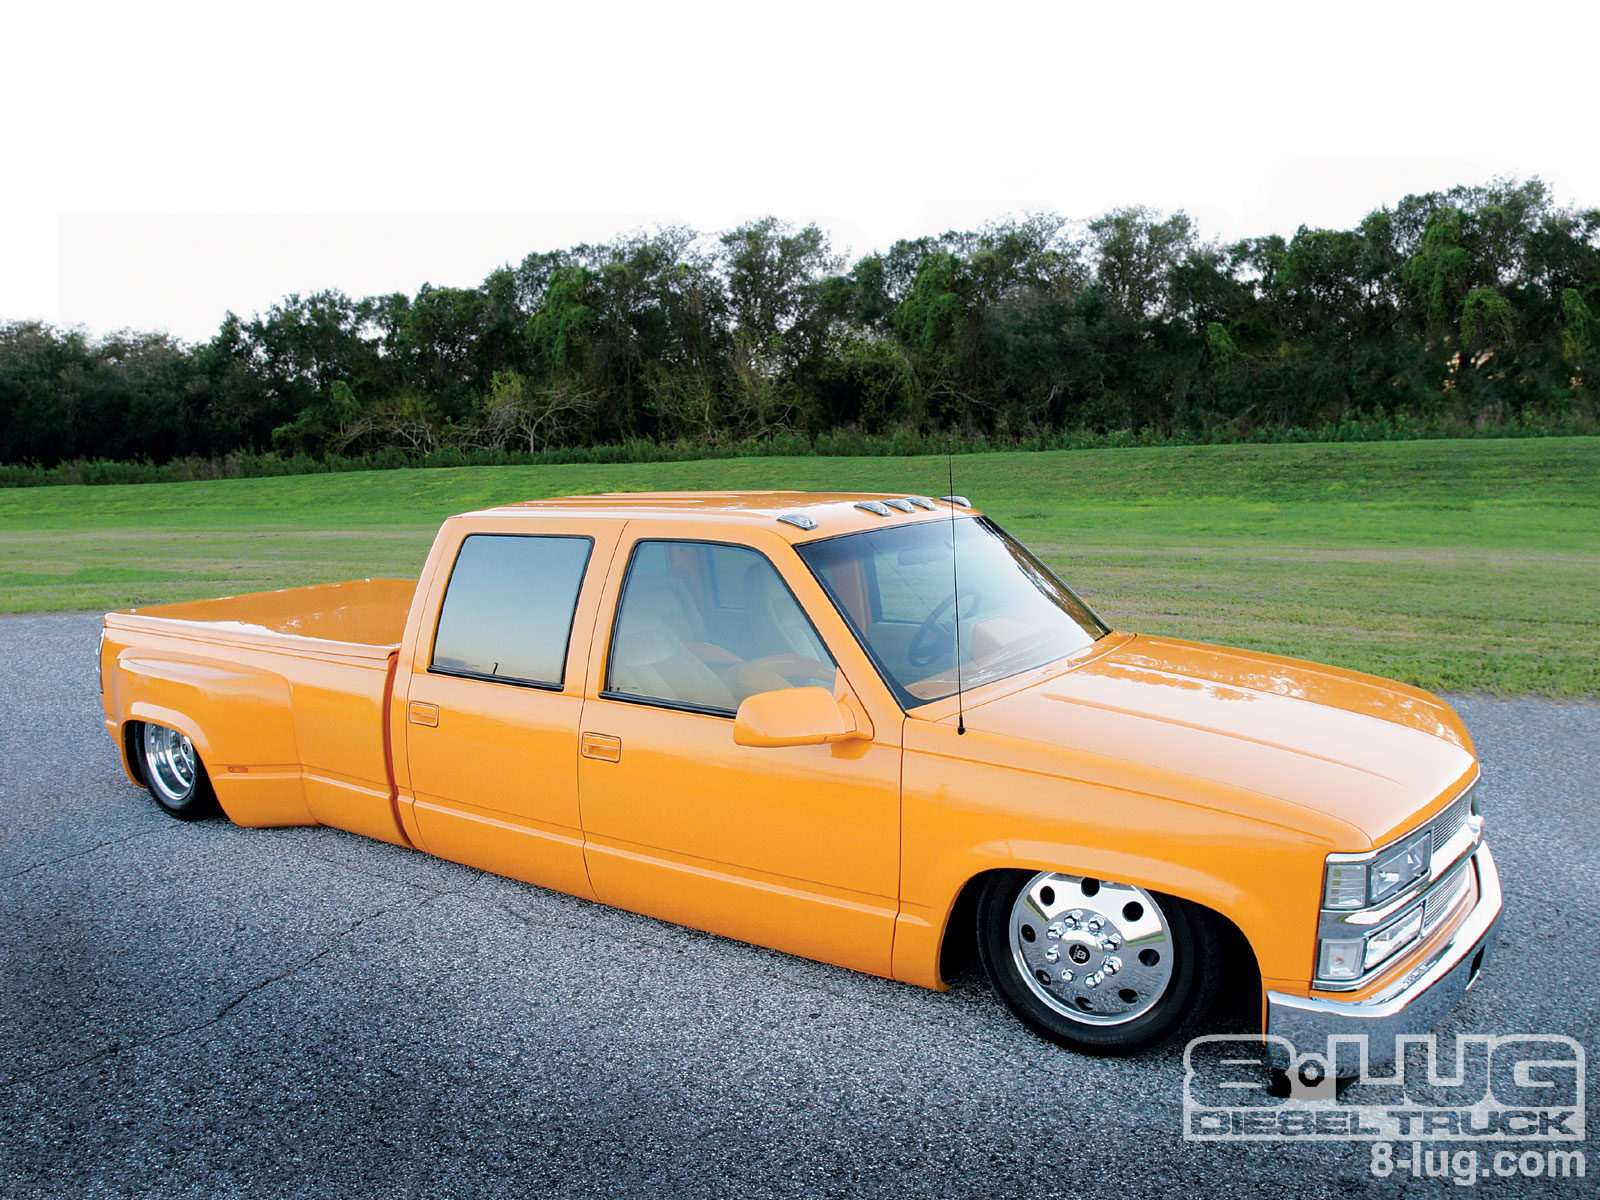 Look at this perfectly bangin truck you gonna trip out :)